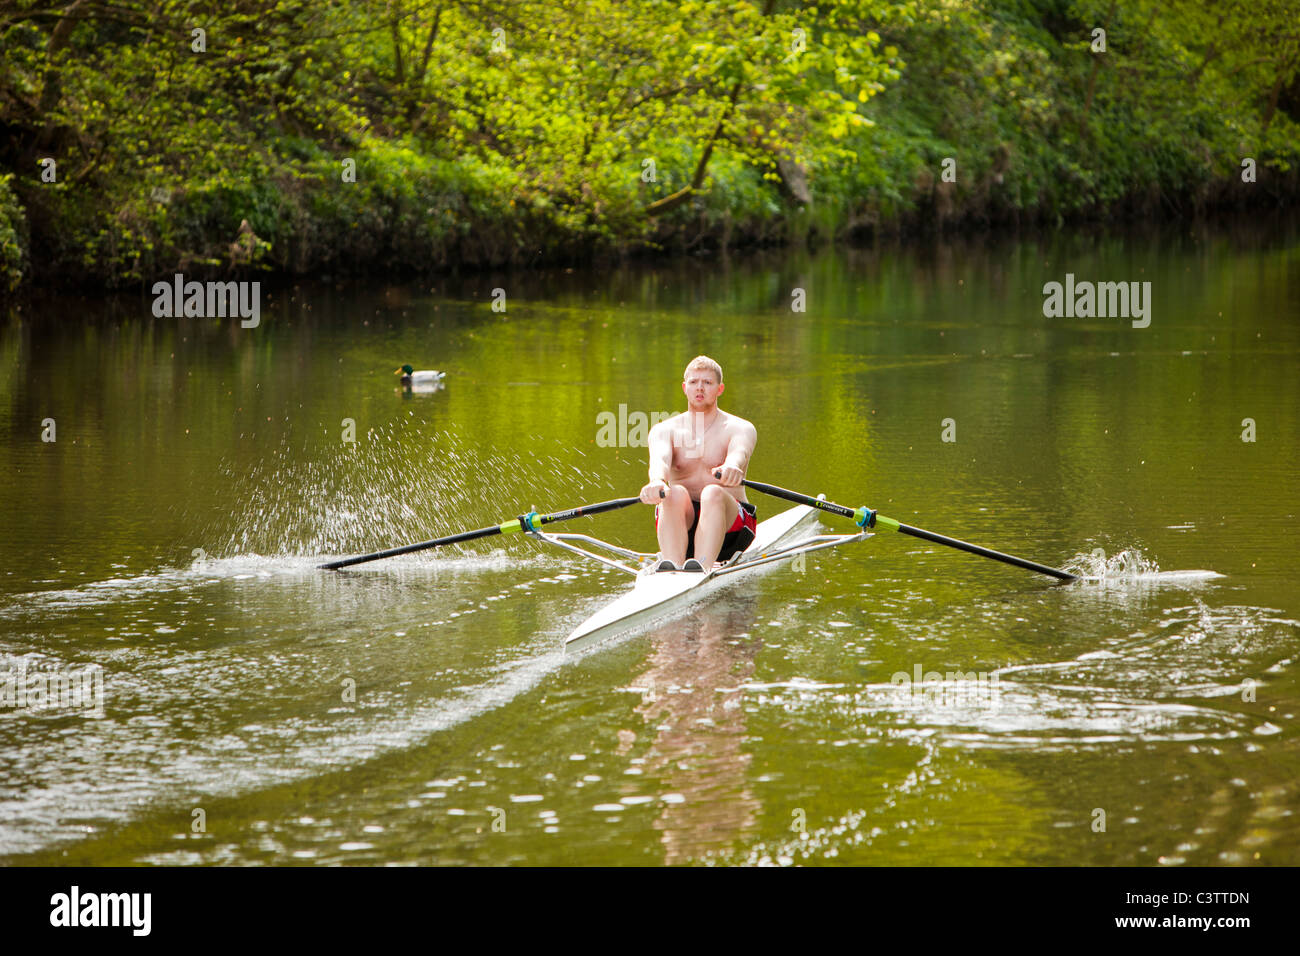 A man in a single skull rowing boat on the River Aire near Saltaire in Yorkshire, UK. - Stock Image